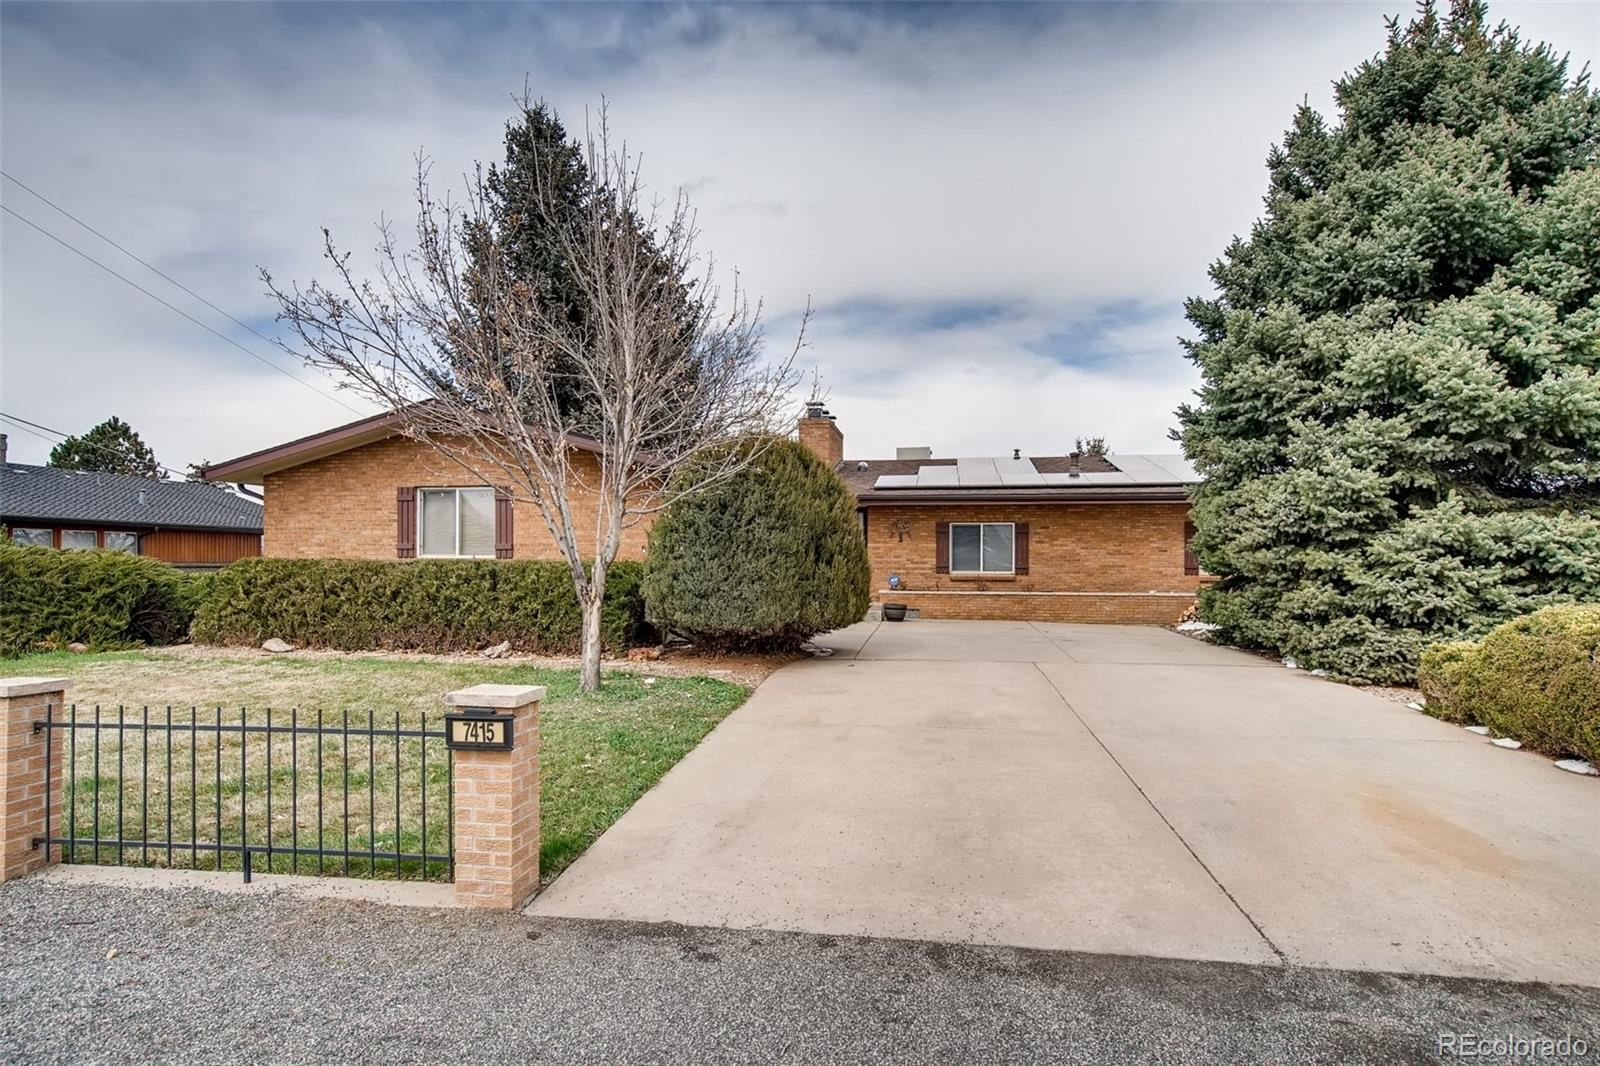 7415 W 94th Place, Westminster, CO 80021 - #: 4771594